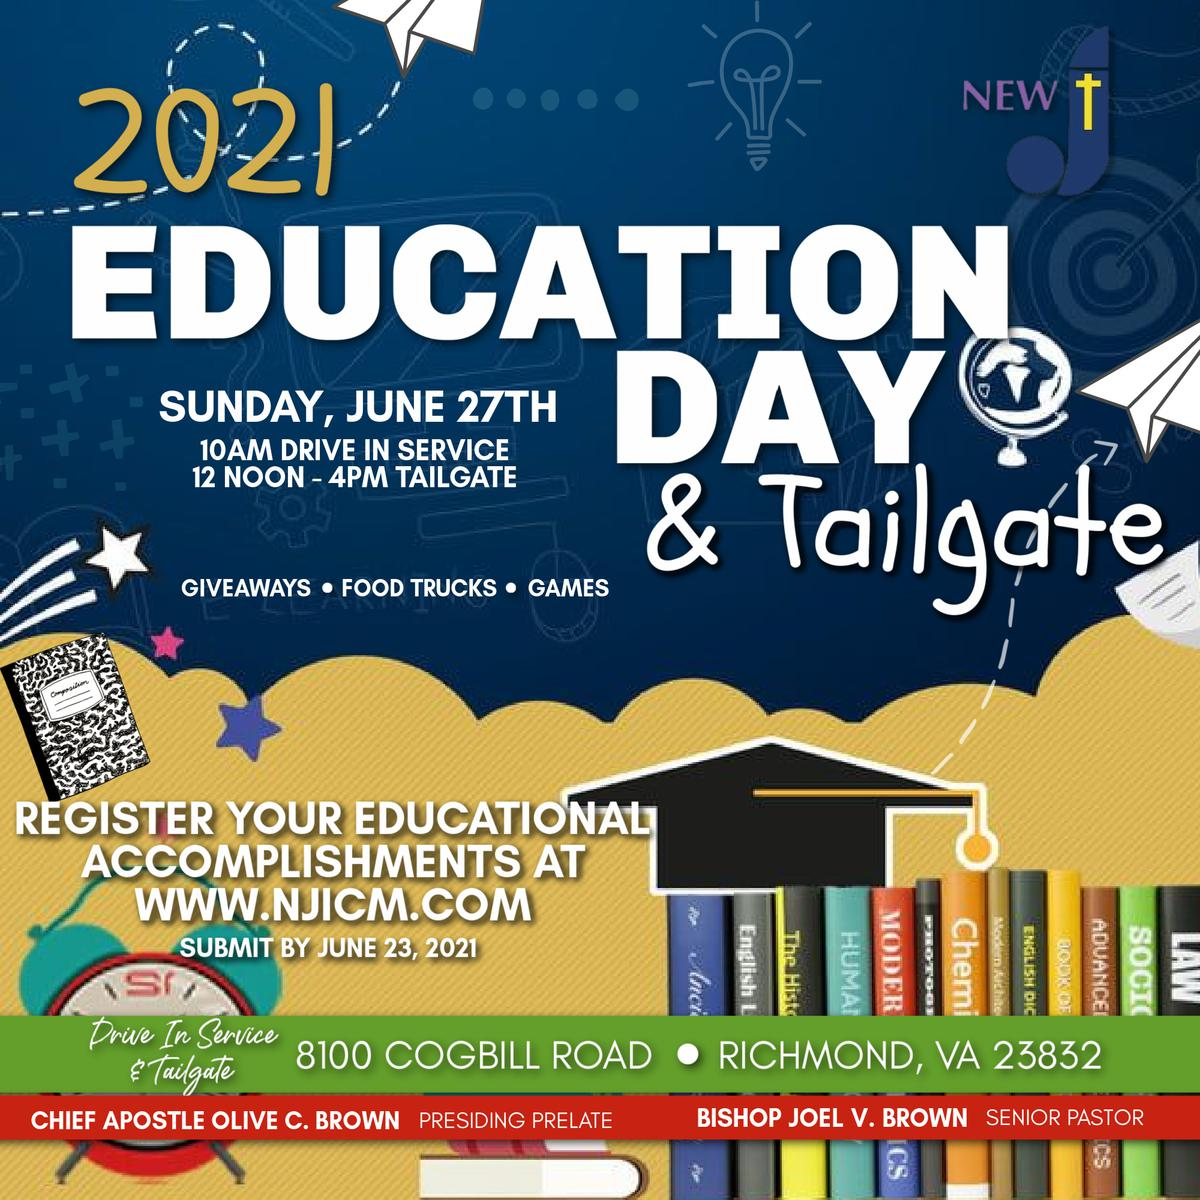 Education Day 2021